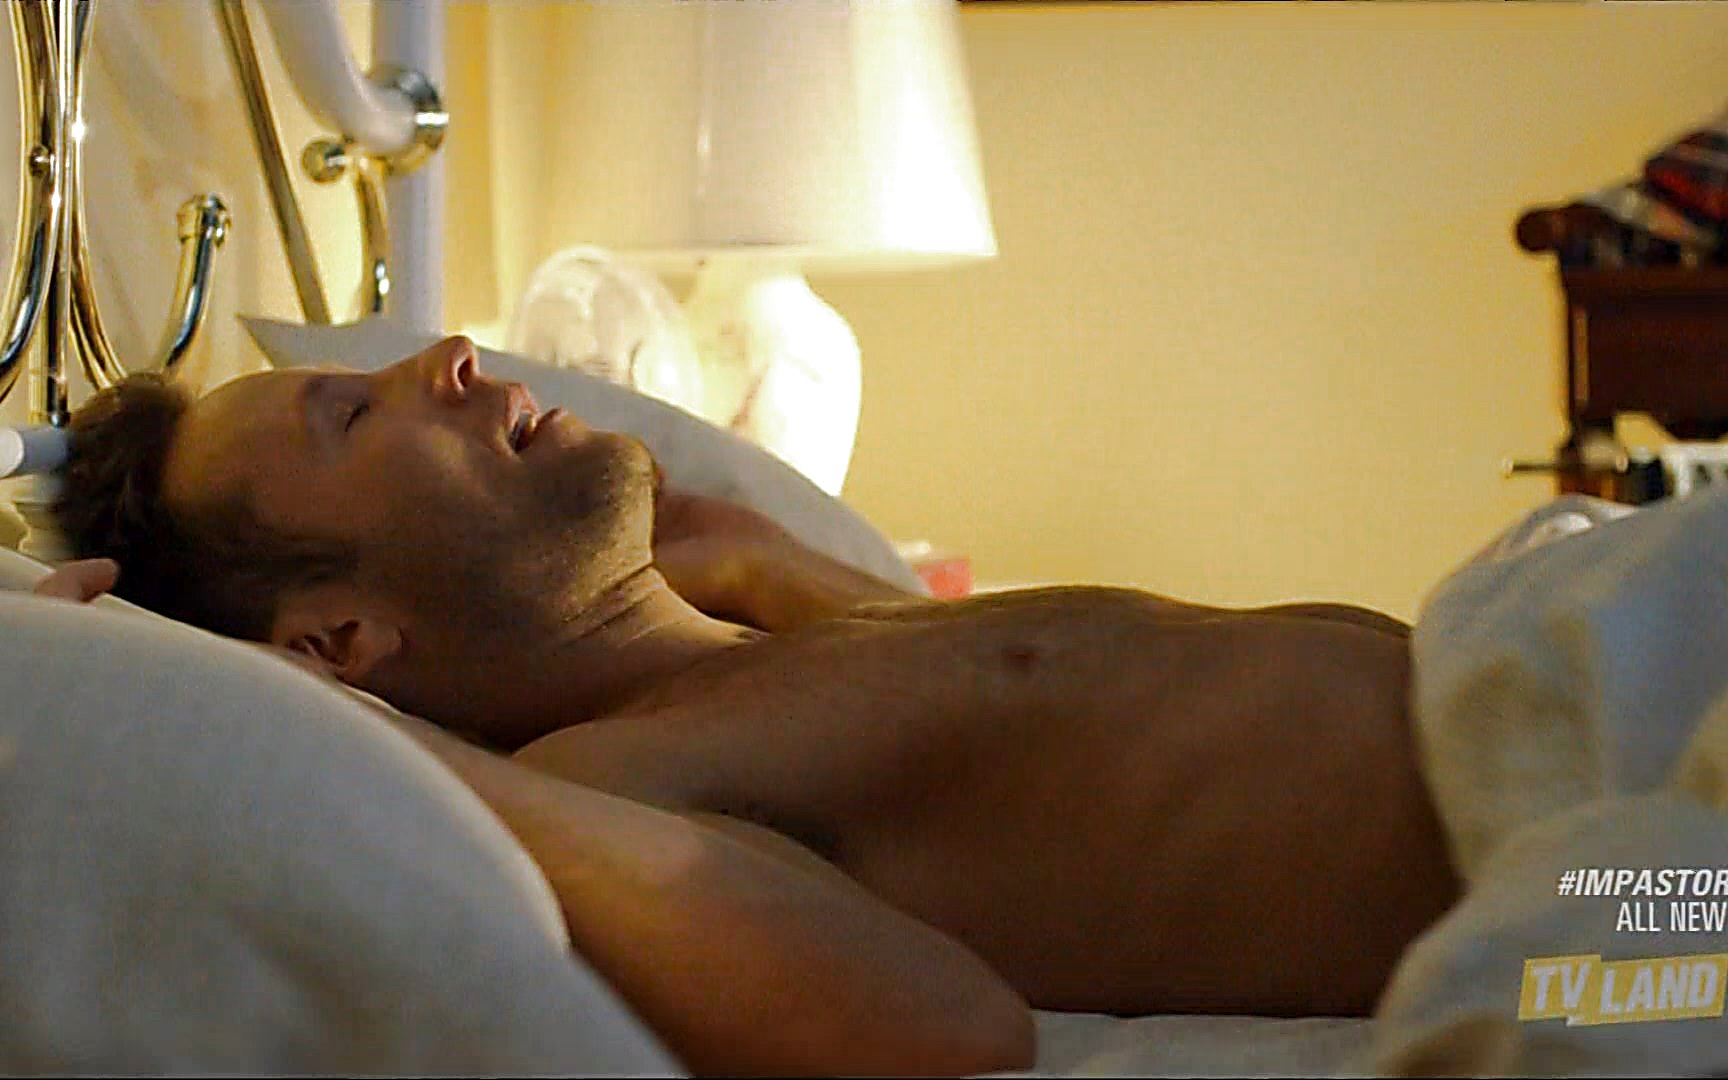 Michael Rosenbaum sexy shirtless scene August 2, 2015, 10pm